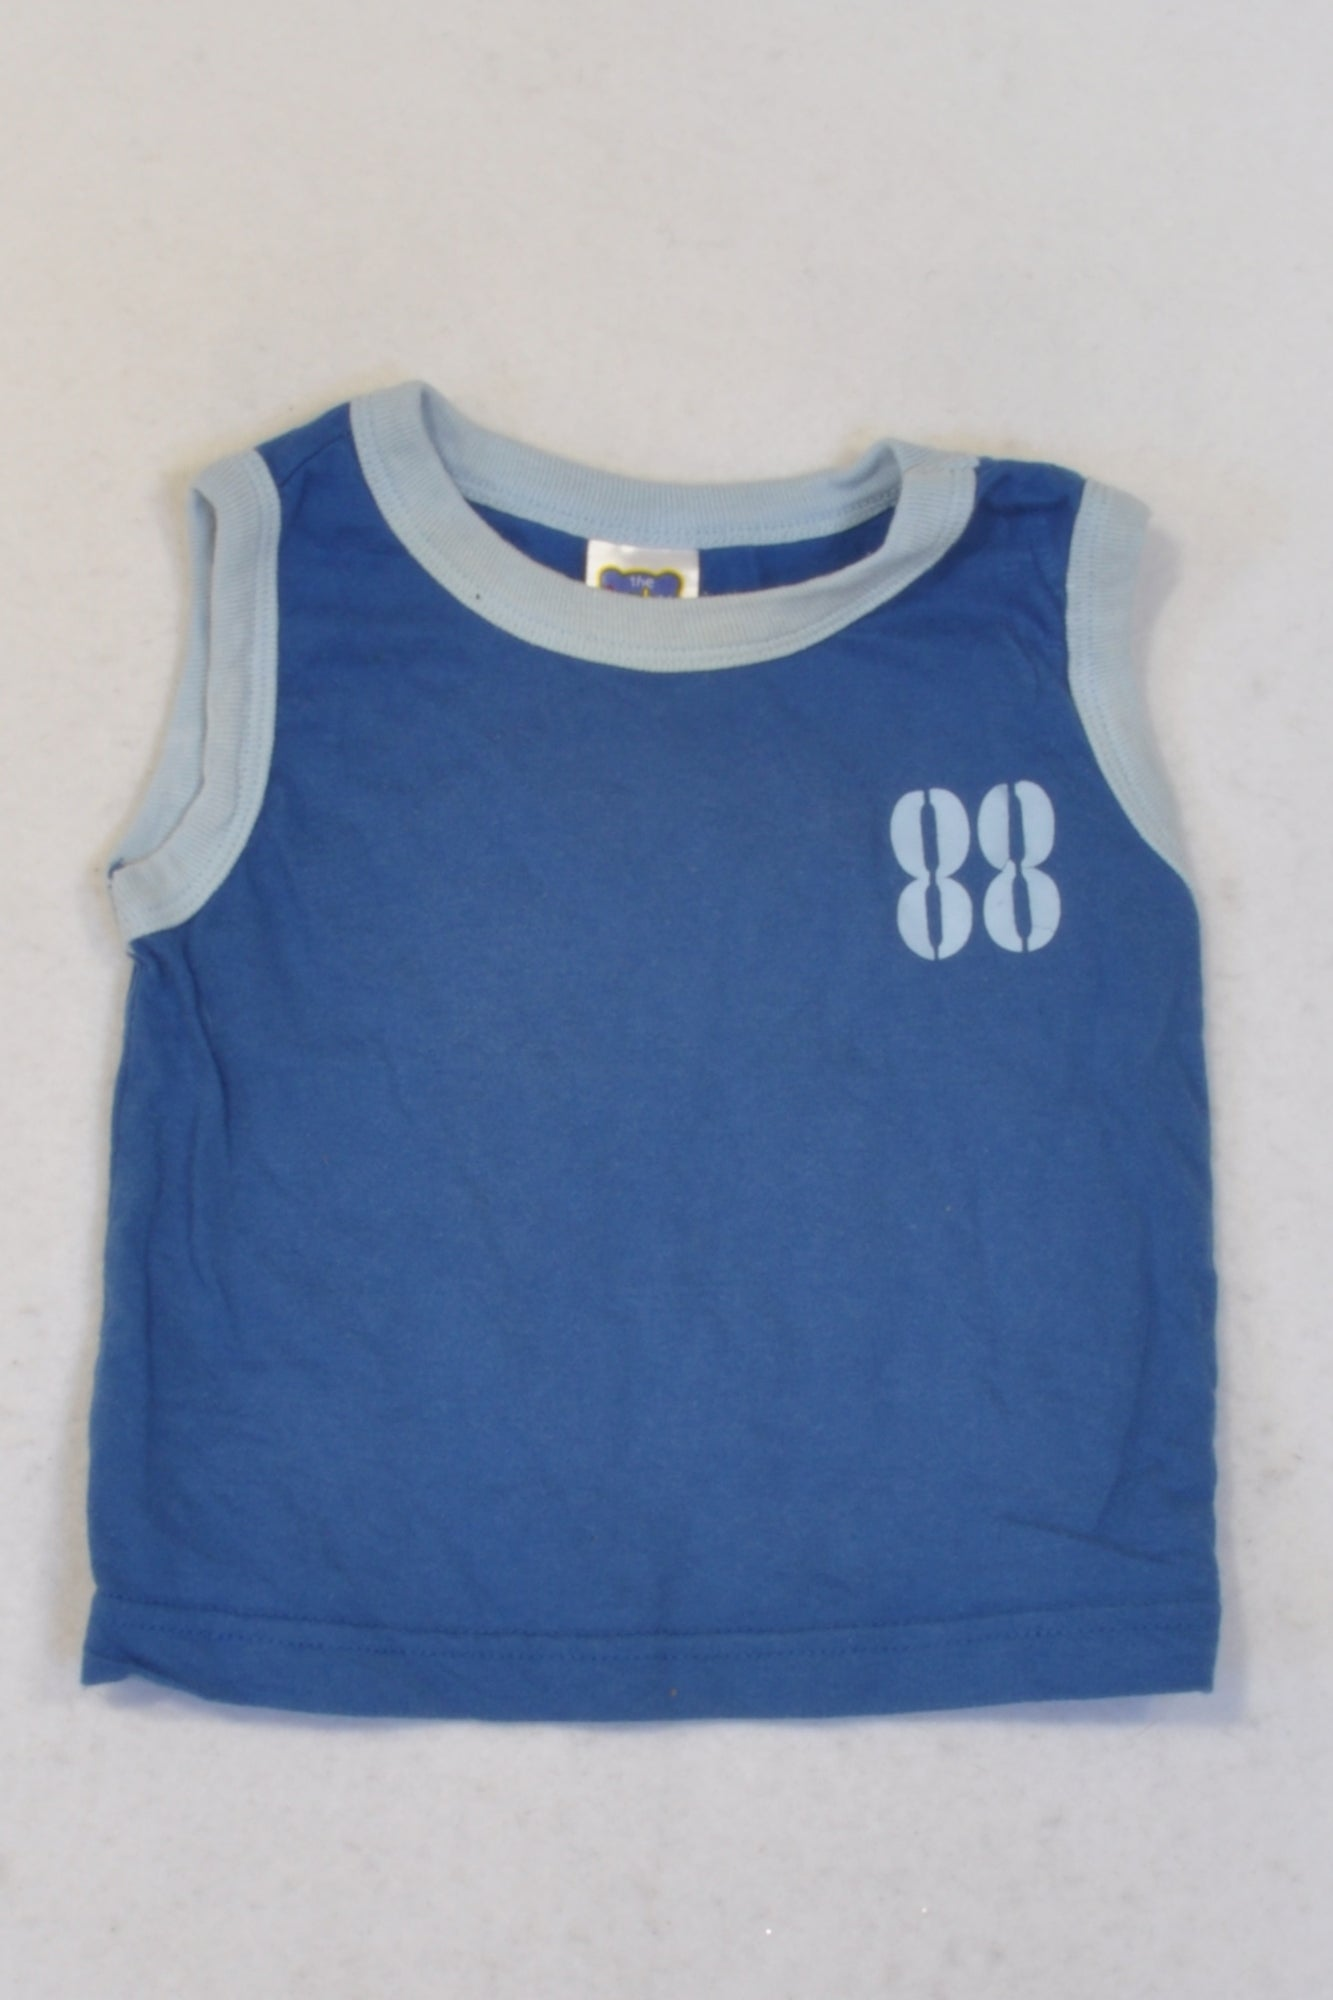 Ackermans Basic Blue 88 Tank Top Boys 3-6 months